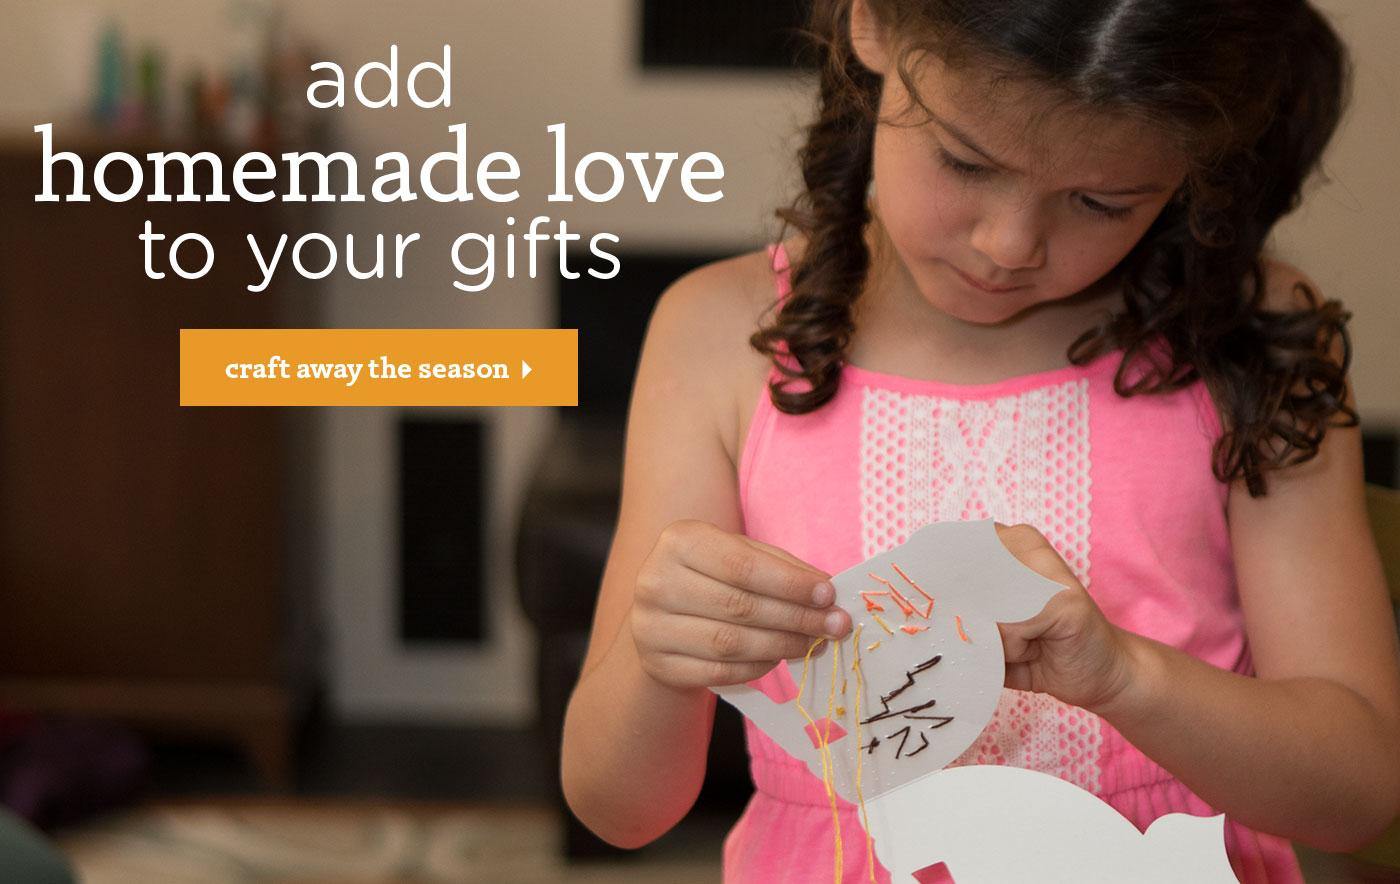 Add Homemade Love to Your Gifts